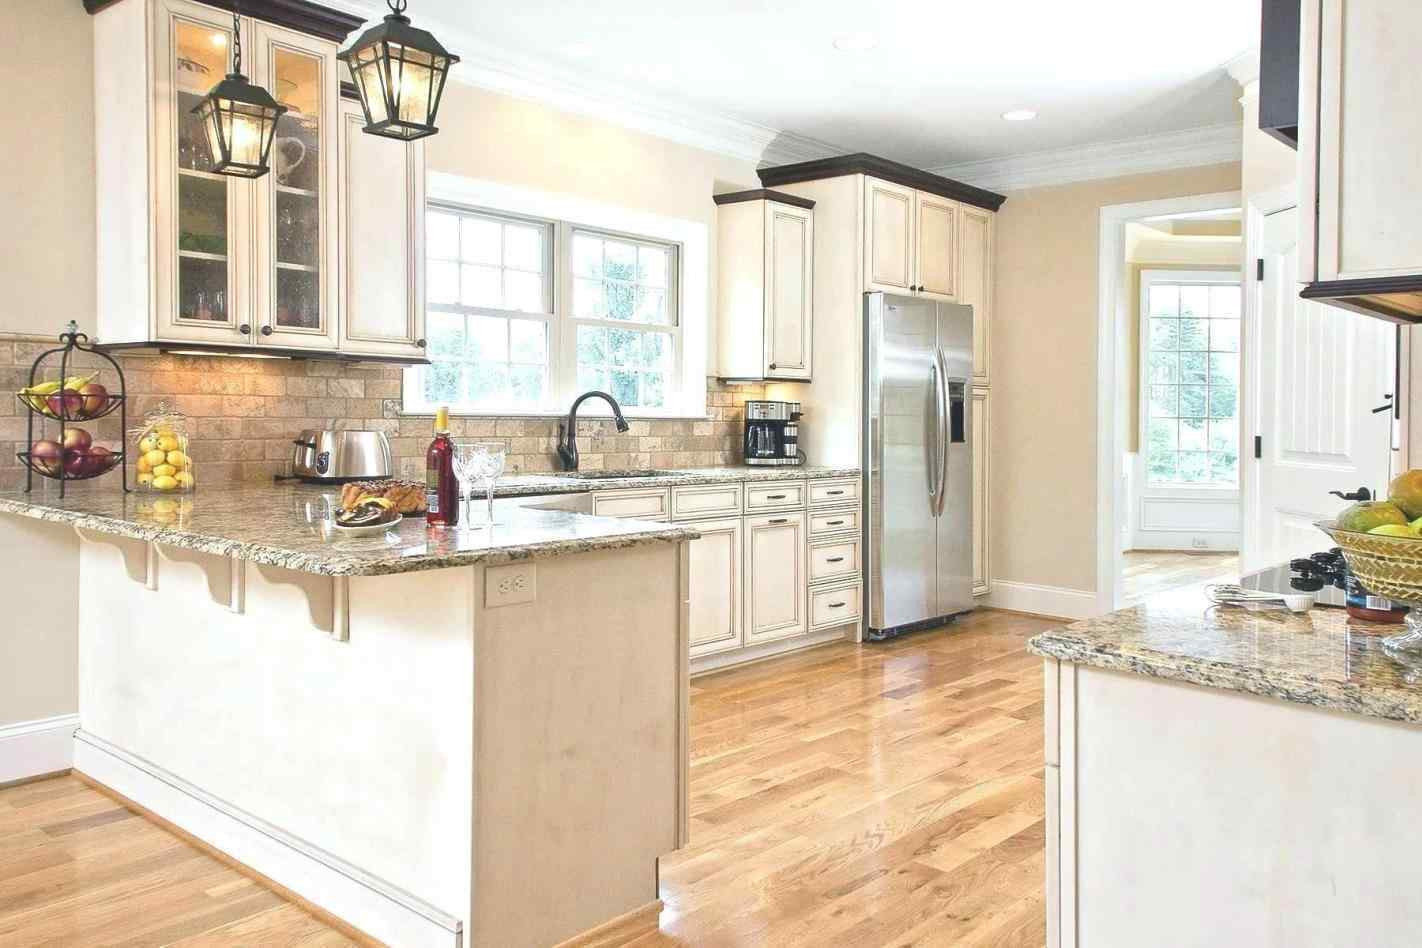 Best ideas about Cost To Install Kitchen Cabinets . Save or Pin Cost To Install Kitchen Cabinet Knobs Now.